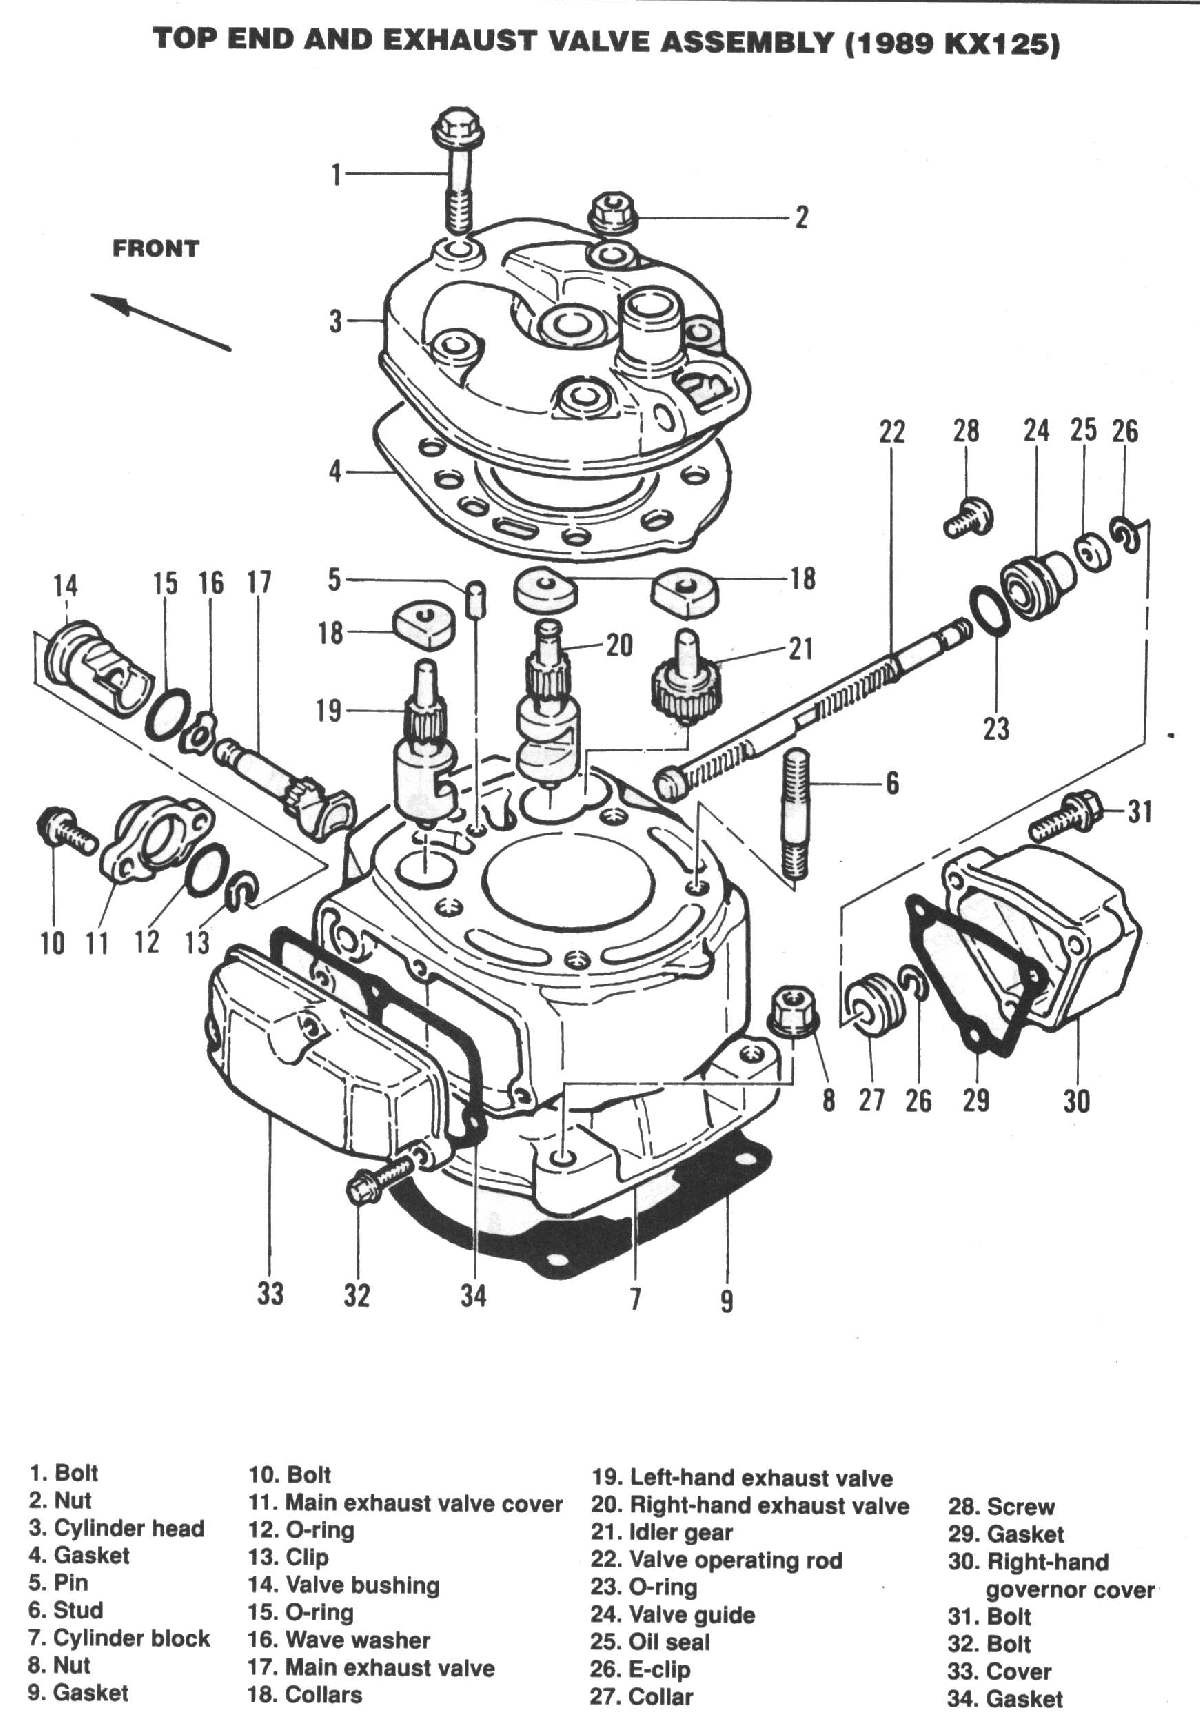 Kawasaki Mojave 250 service Manual Free Download on kawasaki motorcycle wiring diagrams, kawasaki 250 parts diagram, kawasaki kz1000 wiring-diagram, ezgo wiring diagram, kawasaki engine wiring diagrams, kawasaki mule wiring-diagram, kawasaki 100 wiring diagram, kawasaki atv wiring diagram, kawasaki 750 wiring diagram, kawasaki bayou 185 wiring-diagram, kawasaki 500 wiring diagram, kawasaki mojave 250, kawasaki 400 wiring diagram, klr 650 wiring diagram, kawasaki bayou 220 wiring diagram, kawasaki ignition system wiring diagram, suzuki marauder wiring diagram, kawasaki bayou 300 wiring diagram, triton trailer wiring diagram, kawasaki 4 wheeler wiring diagram,